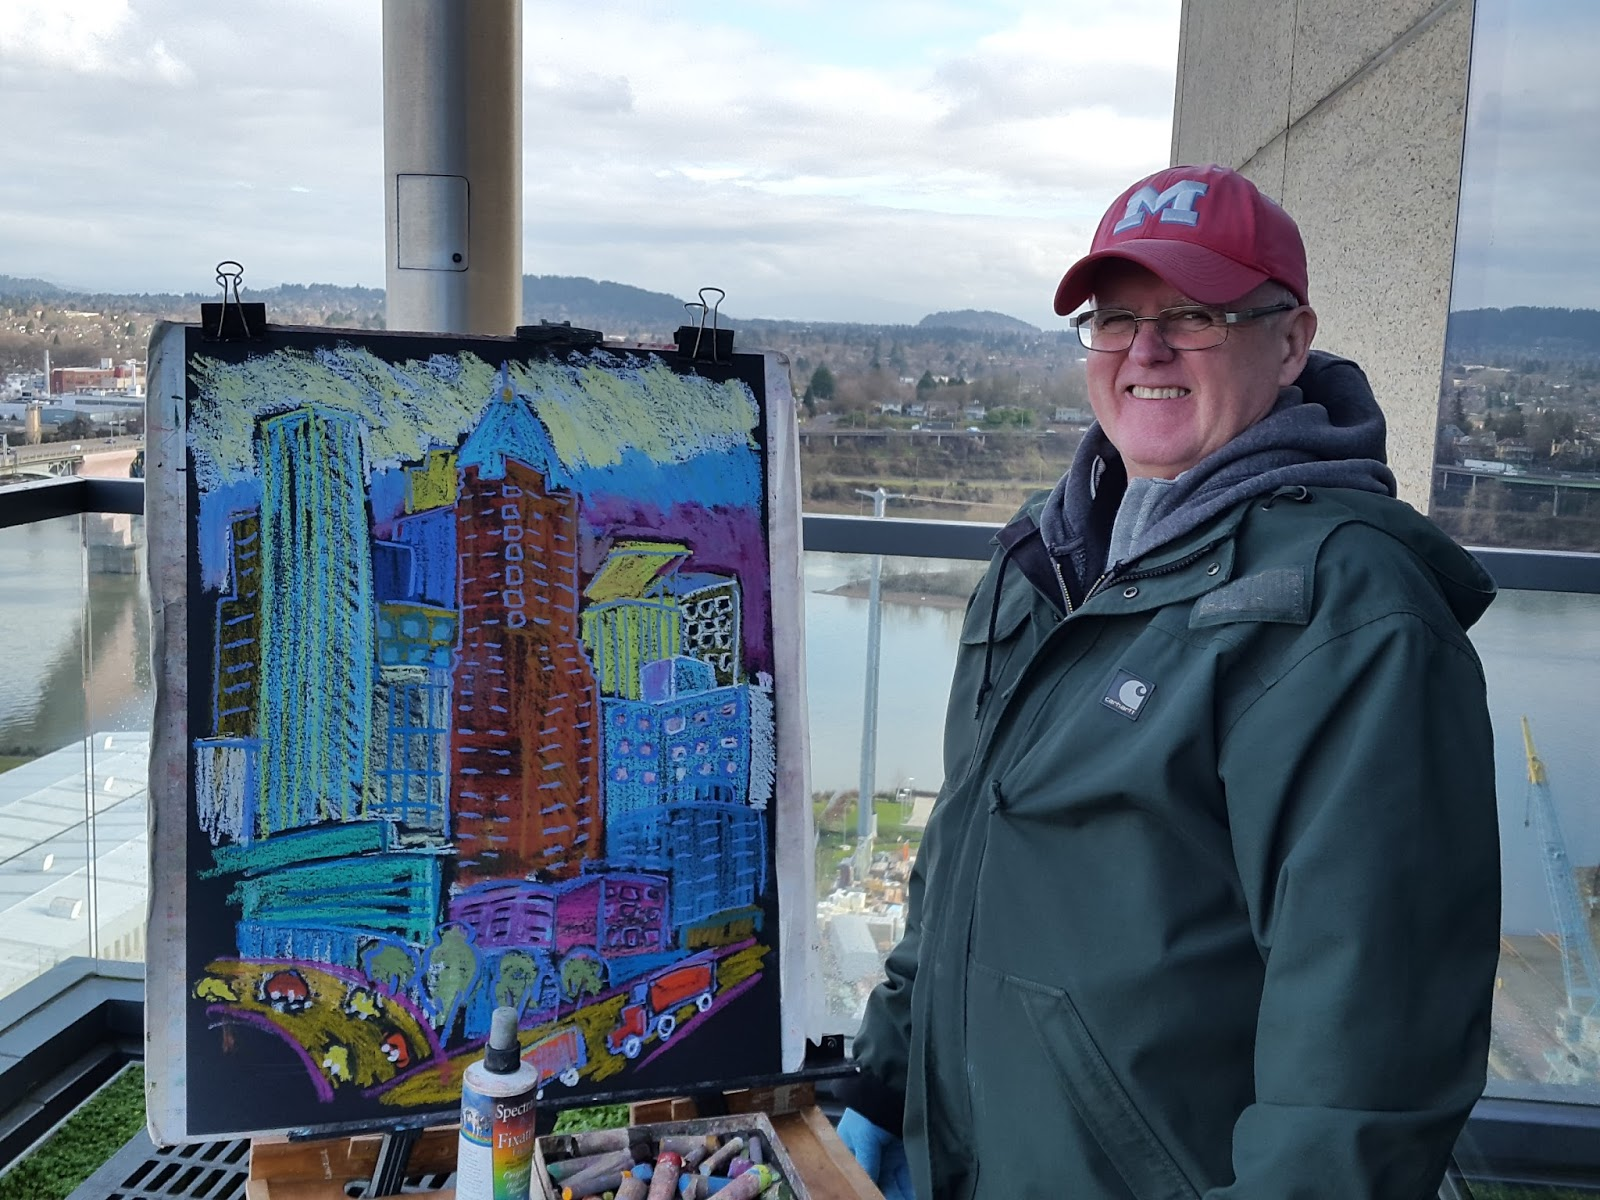 Plein air brooks painting from ohsu wellness center 16th for 16th floor paul kelly